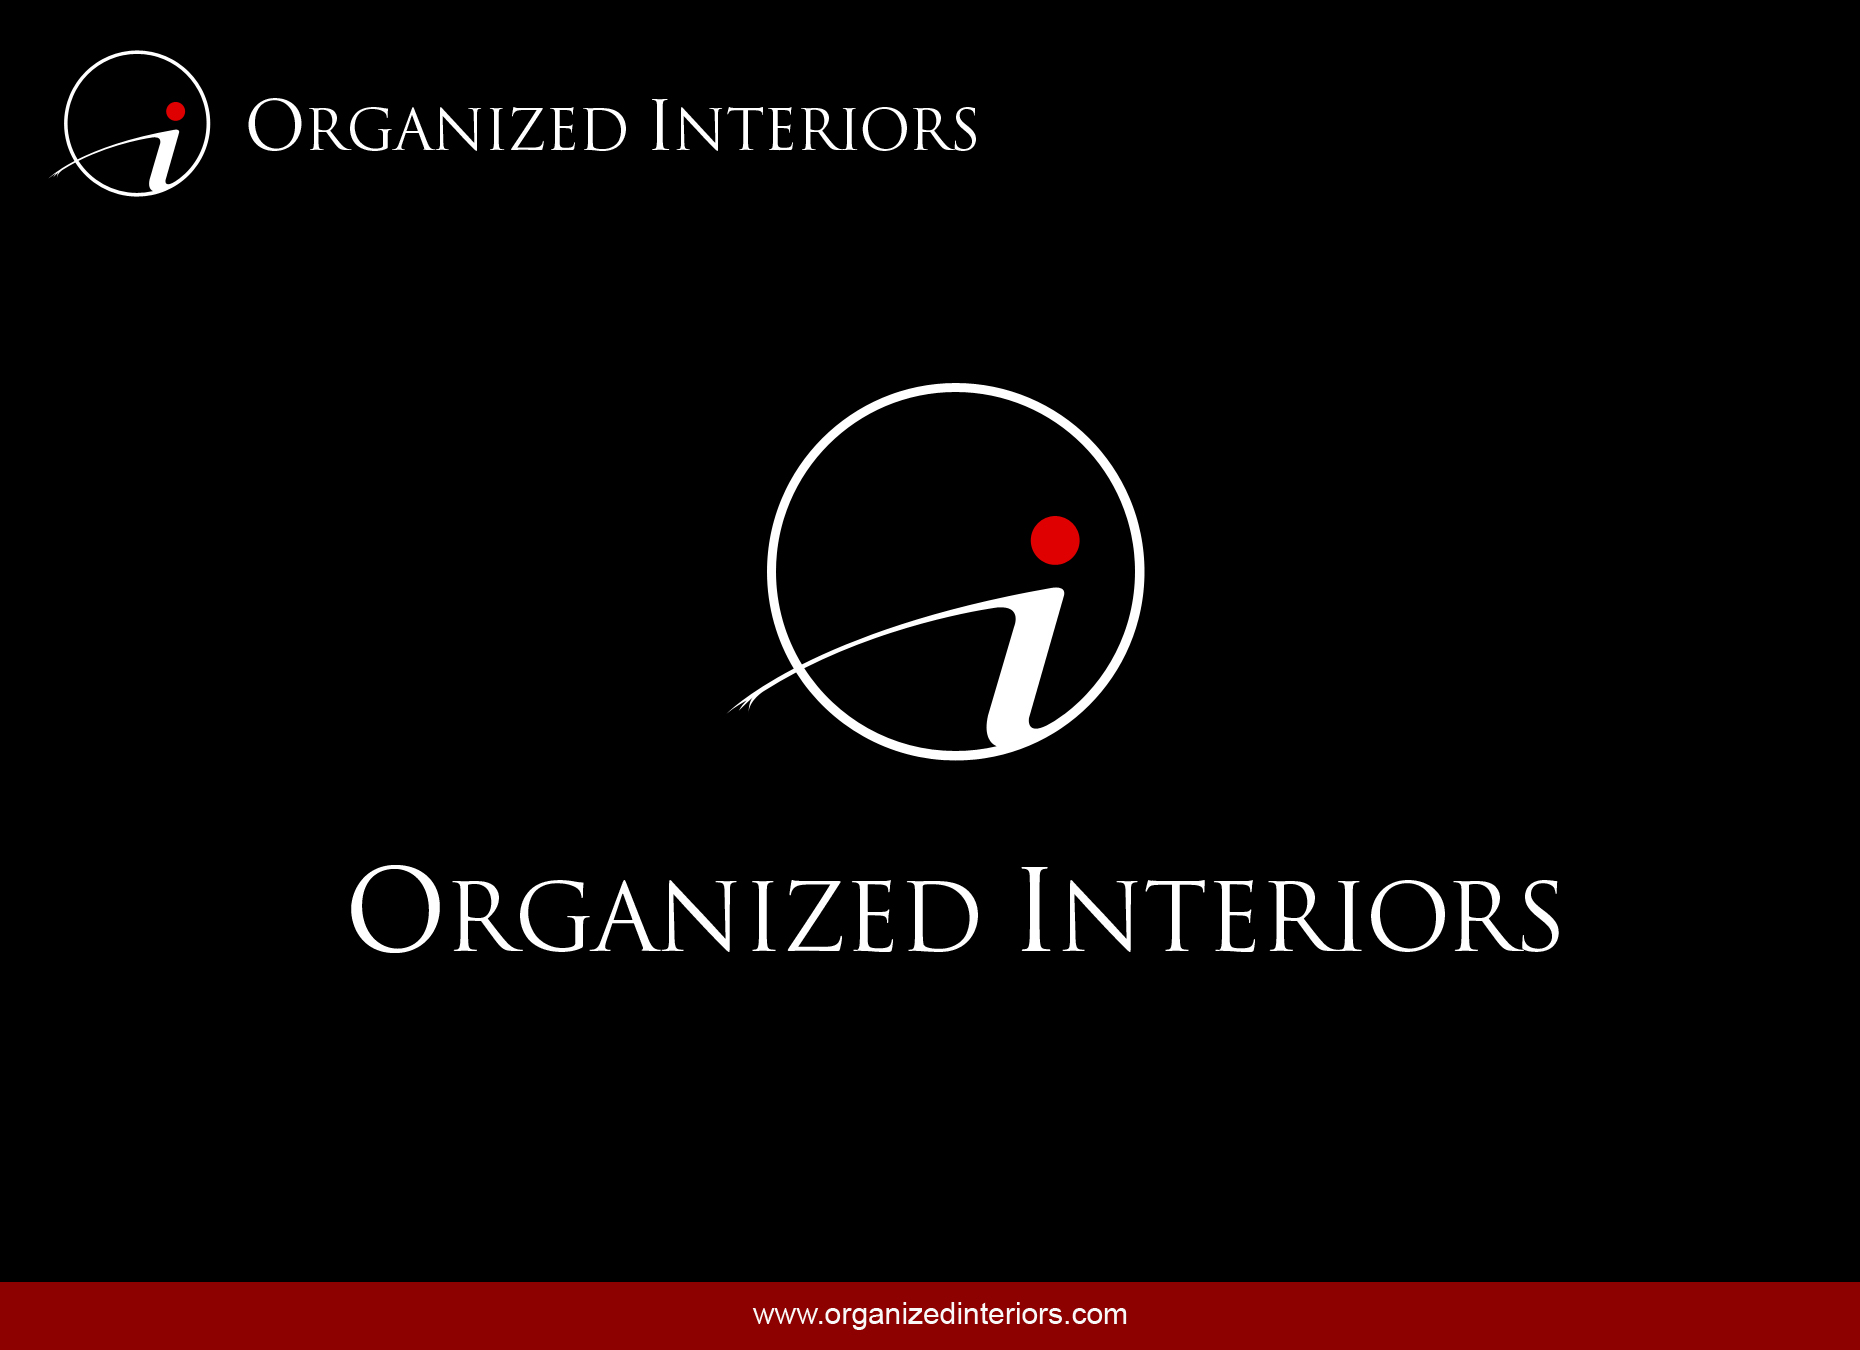 Logo Design by omARTist - Entry No. 103 in the Logo Design Contest Imaginative Logo Design for Organized Interiors.